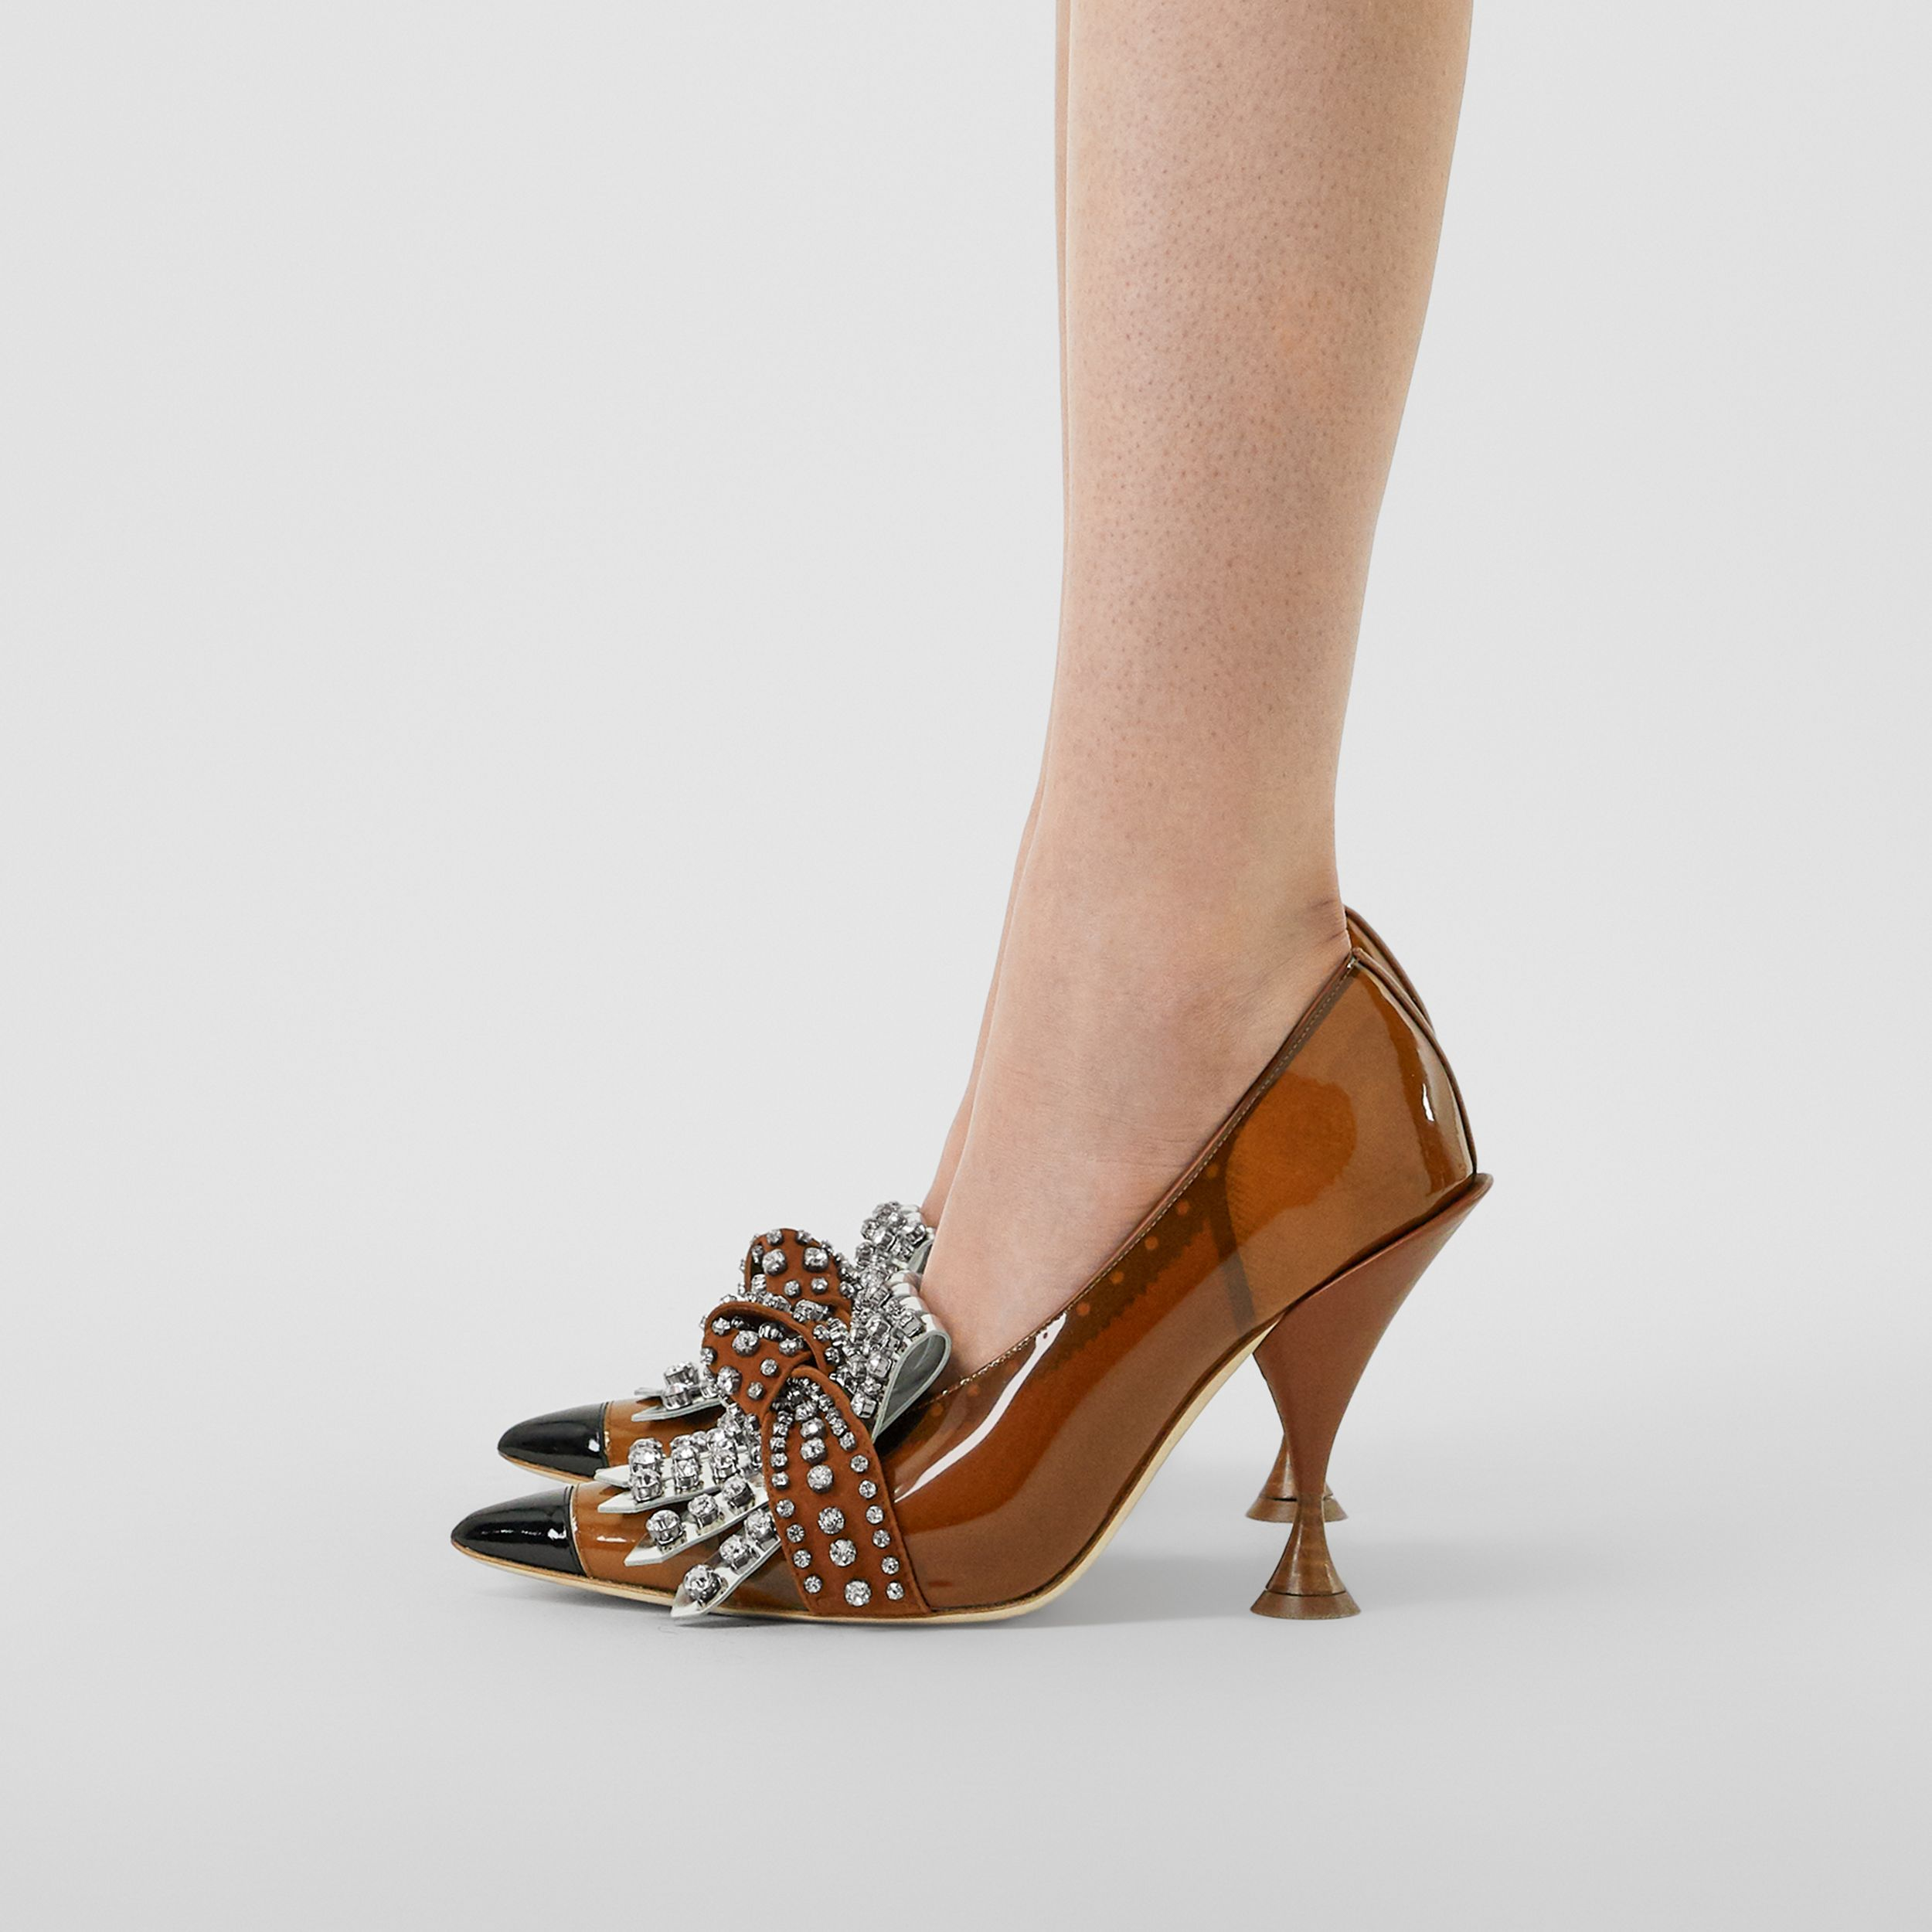 Crystal Kiltie Fringe Vinyl and Leather Point-toe Pumps in Malt Brown/black - Women | Burberry Hong Kong S.A.R. - 3